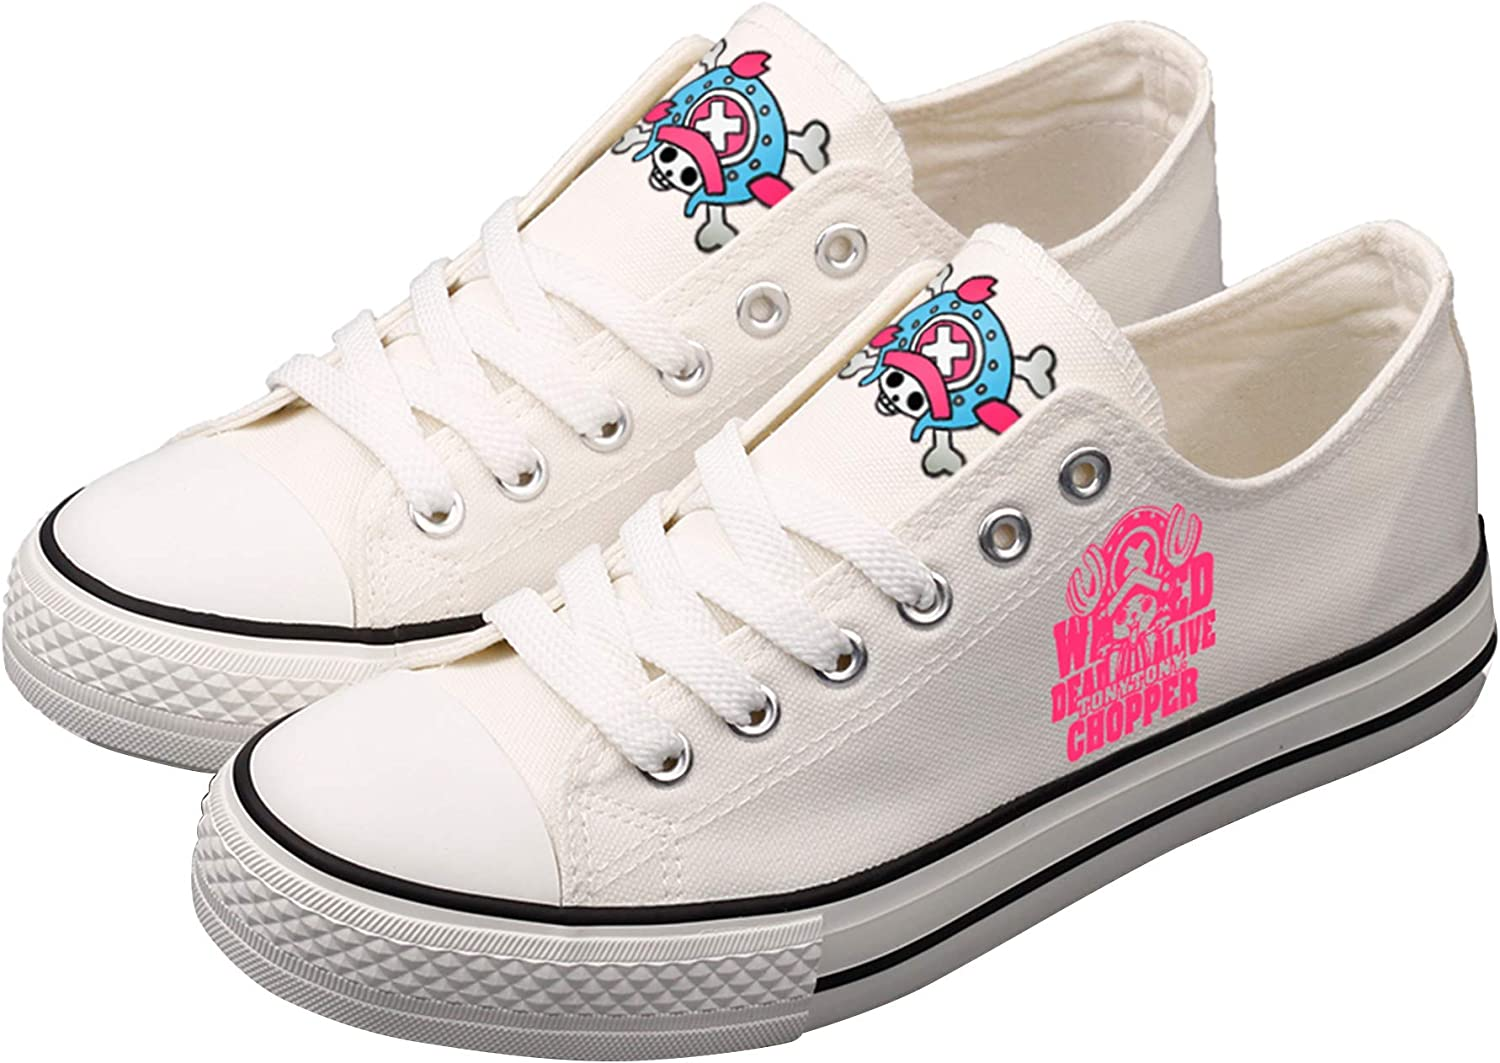 BEGOOTION Hand-Painted Canvas shoes Printing Canvas shoes ONE Piece Unisex Designs Casual Sneakers